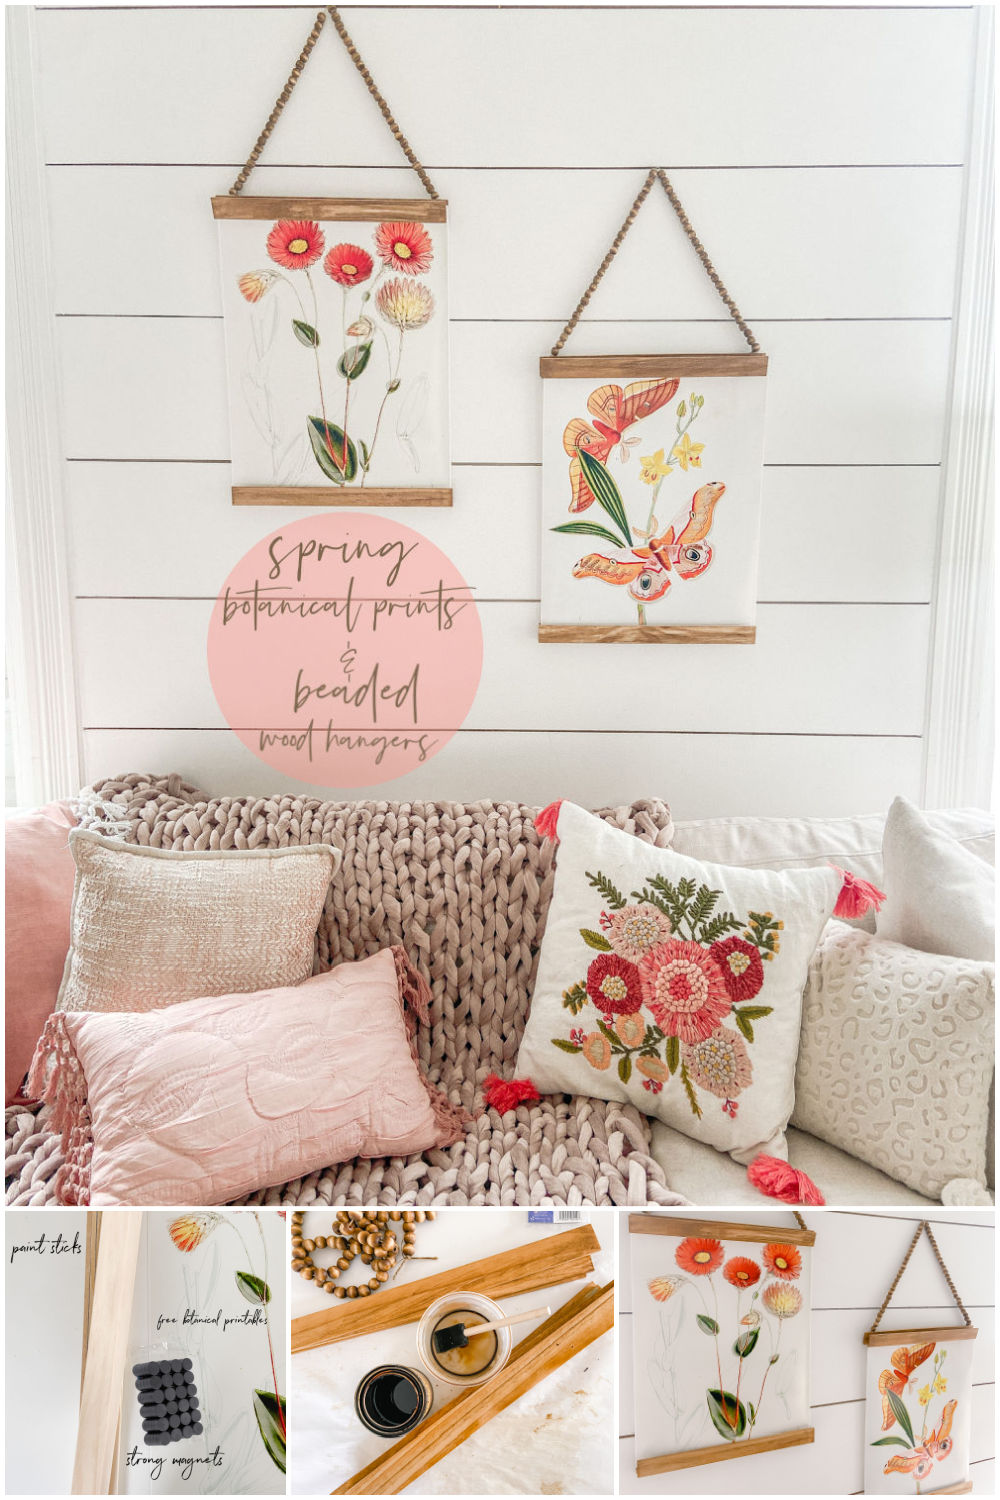 Spring Botanical Prints with Beaded Hangers. Bring a little spring color into your home with these vintage botanical prints and make beaded hangers for less than $5!